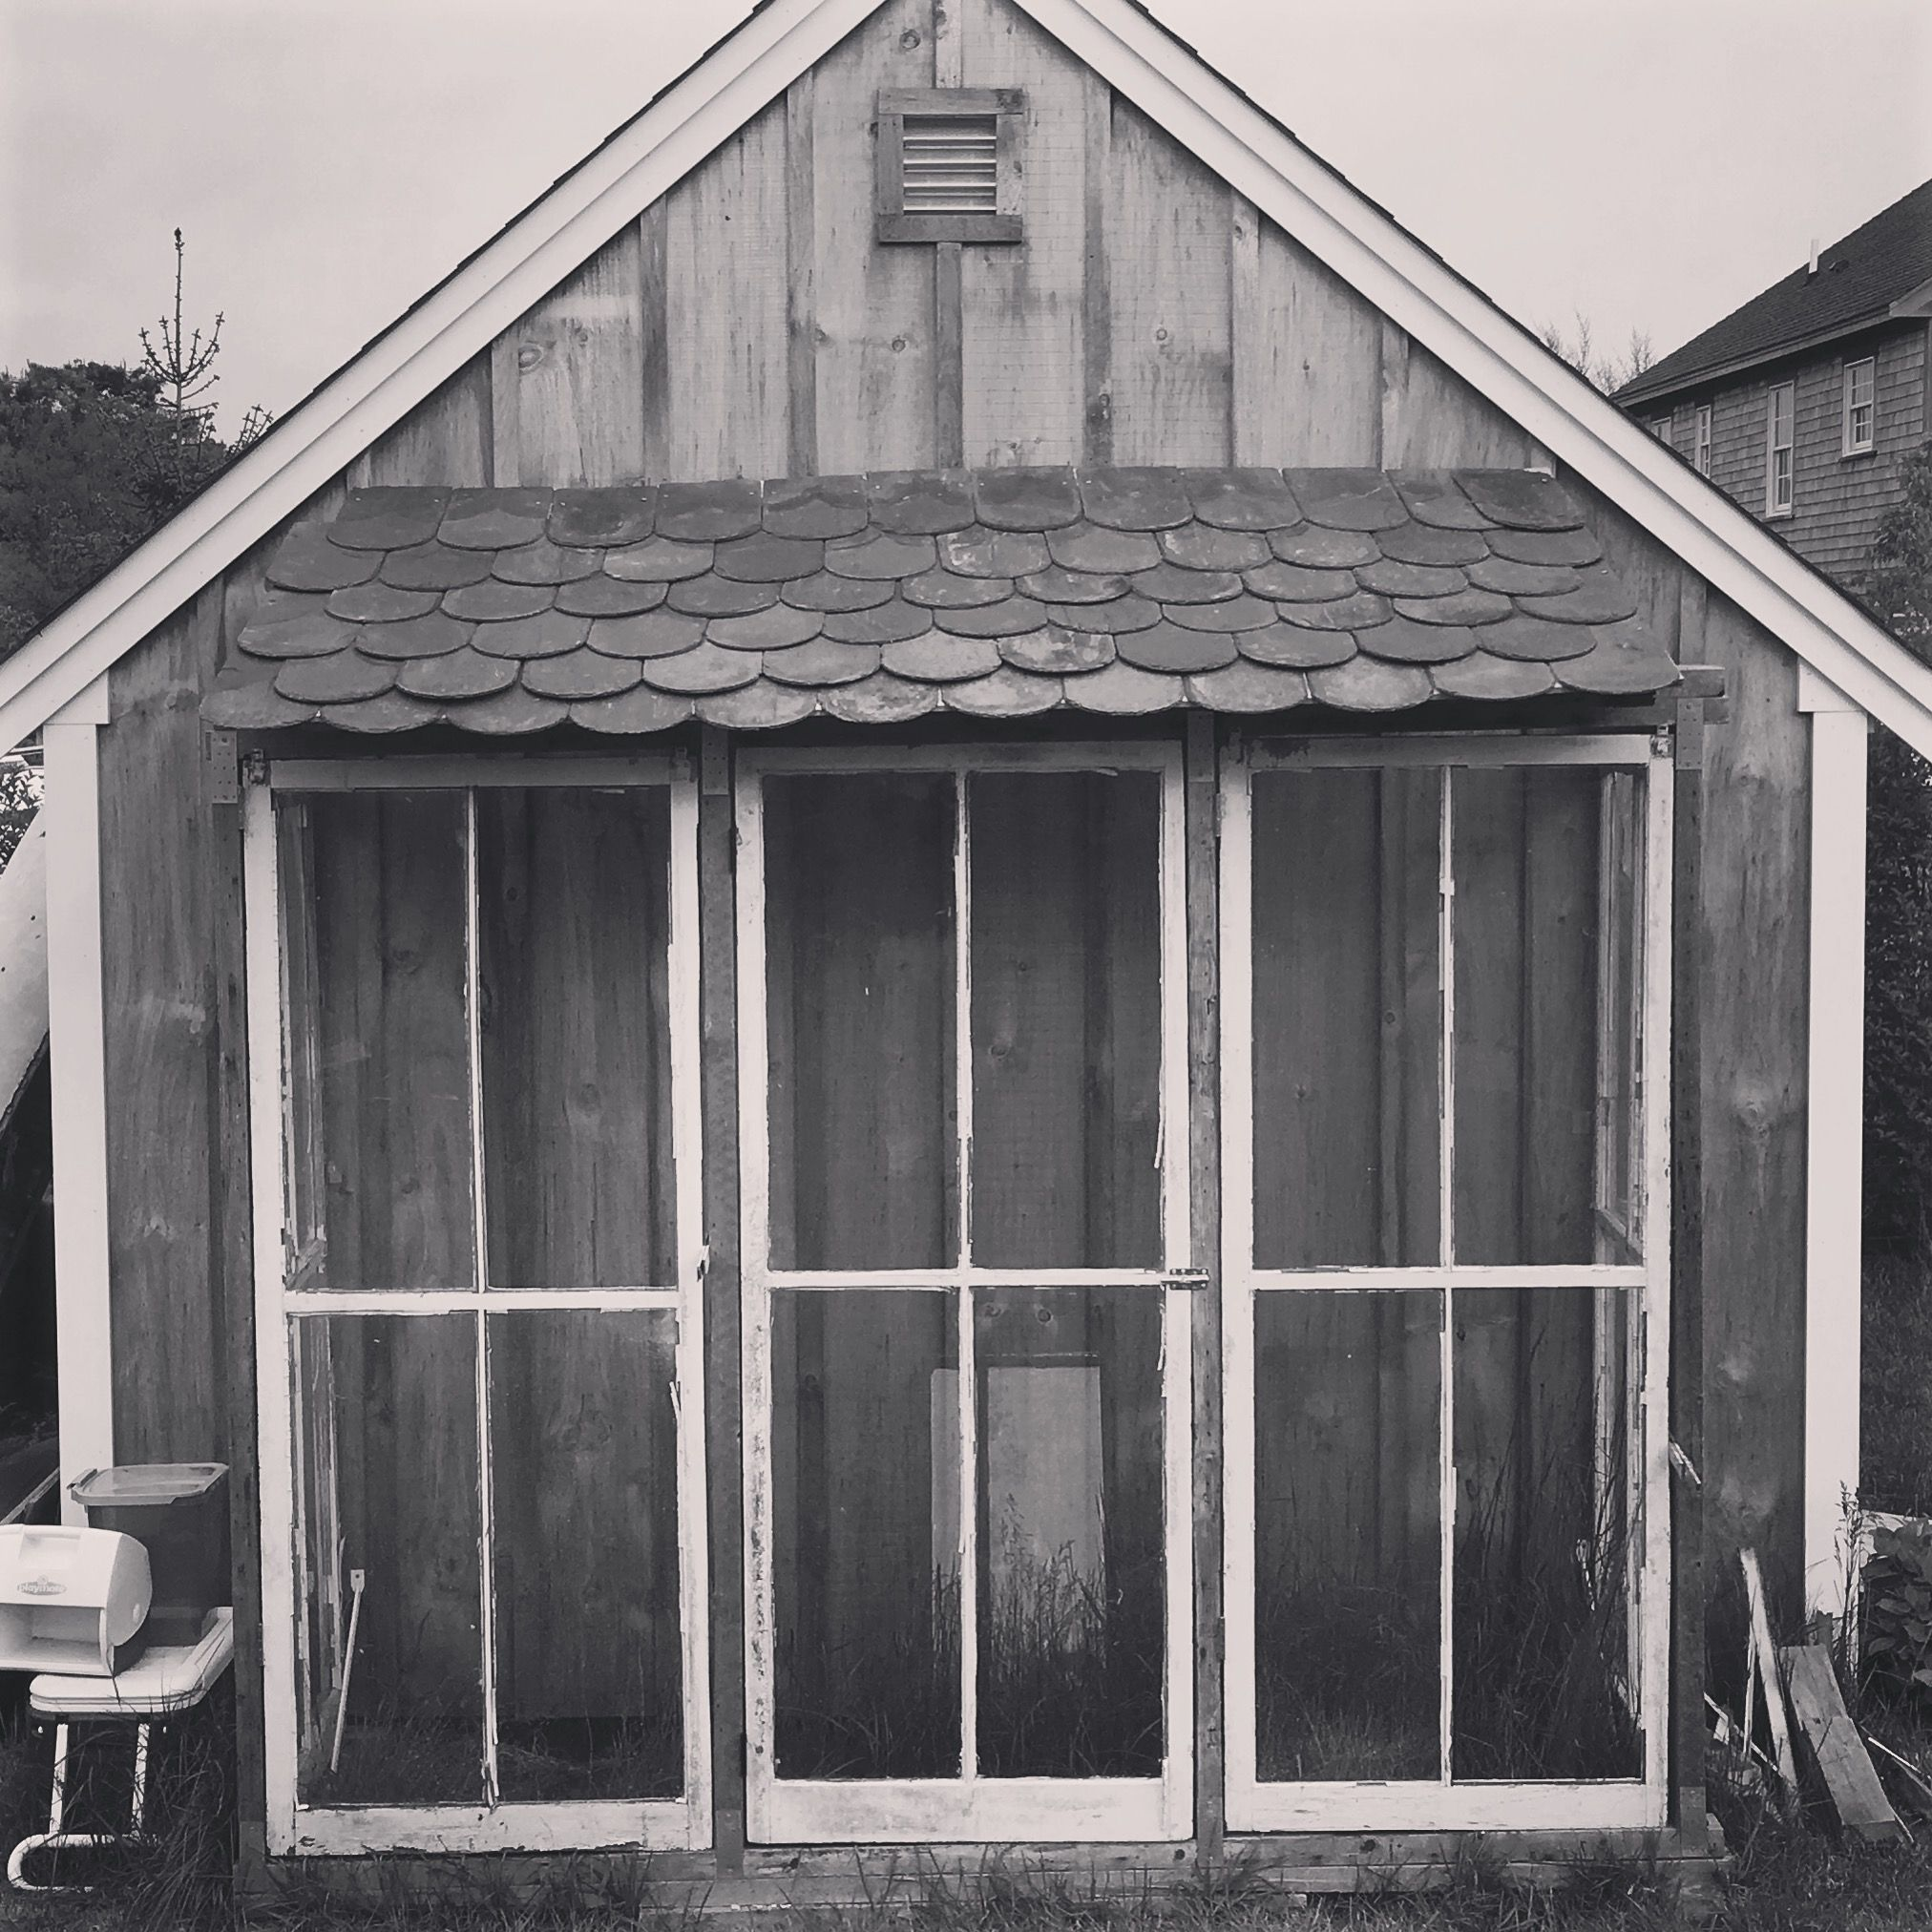 3 pane window ideas  great reuse of antique storm windows timbers from an old school and